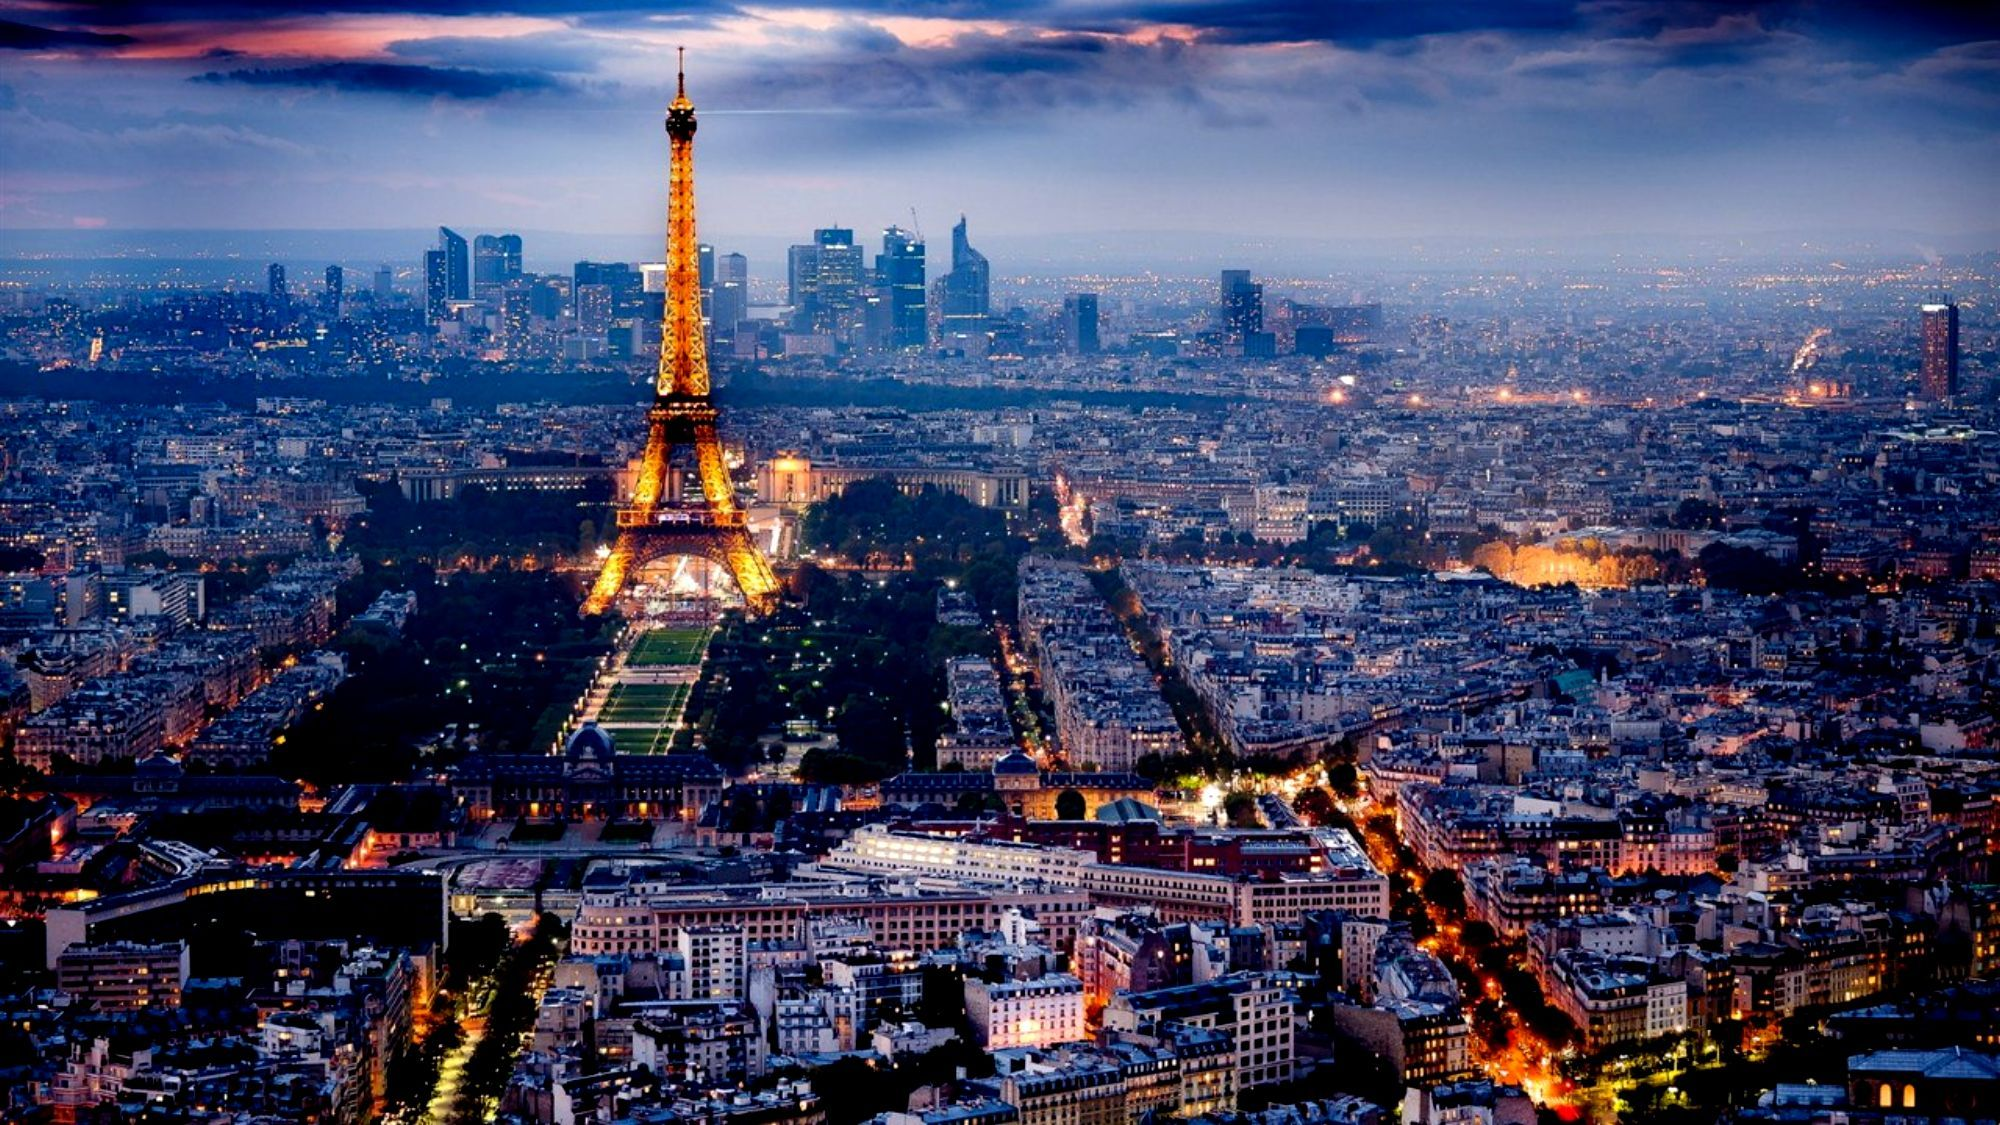 Download Free Paris Wallpapers For Your Computer And